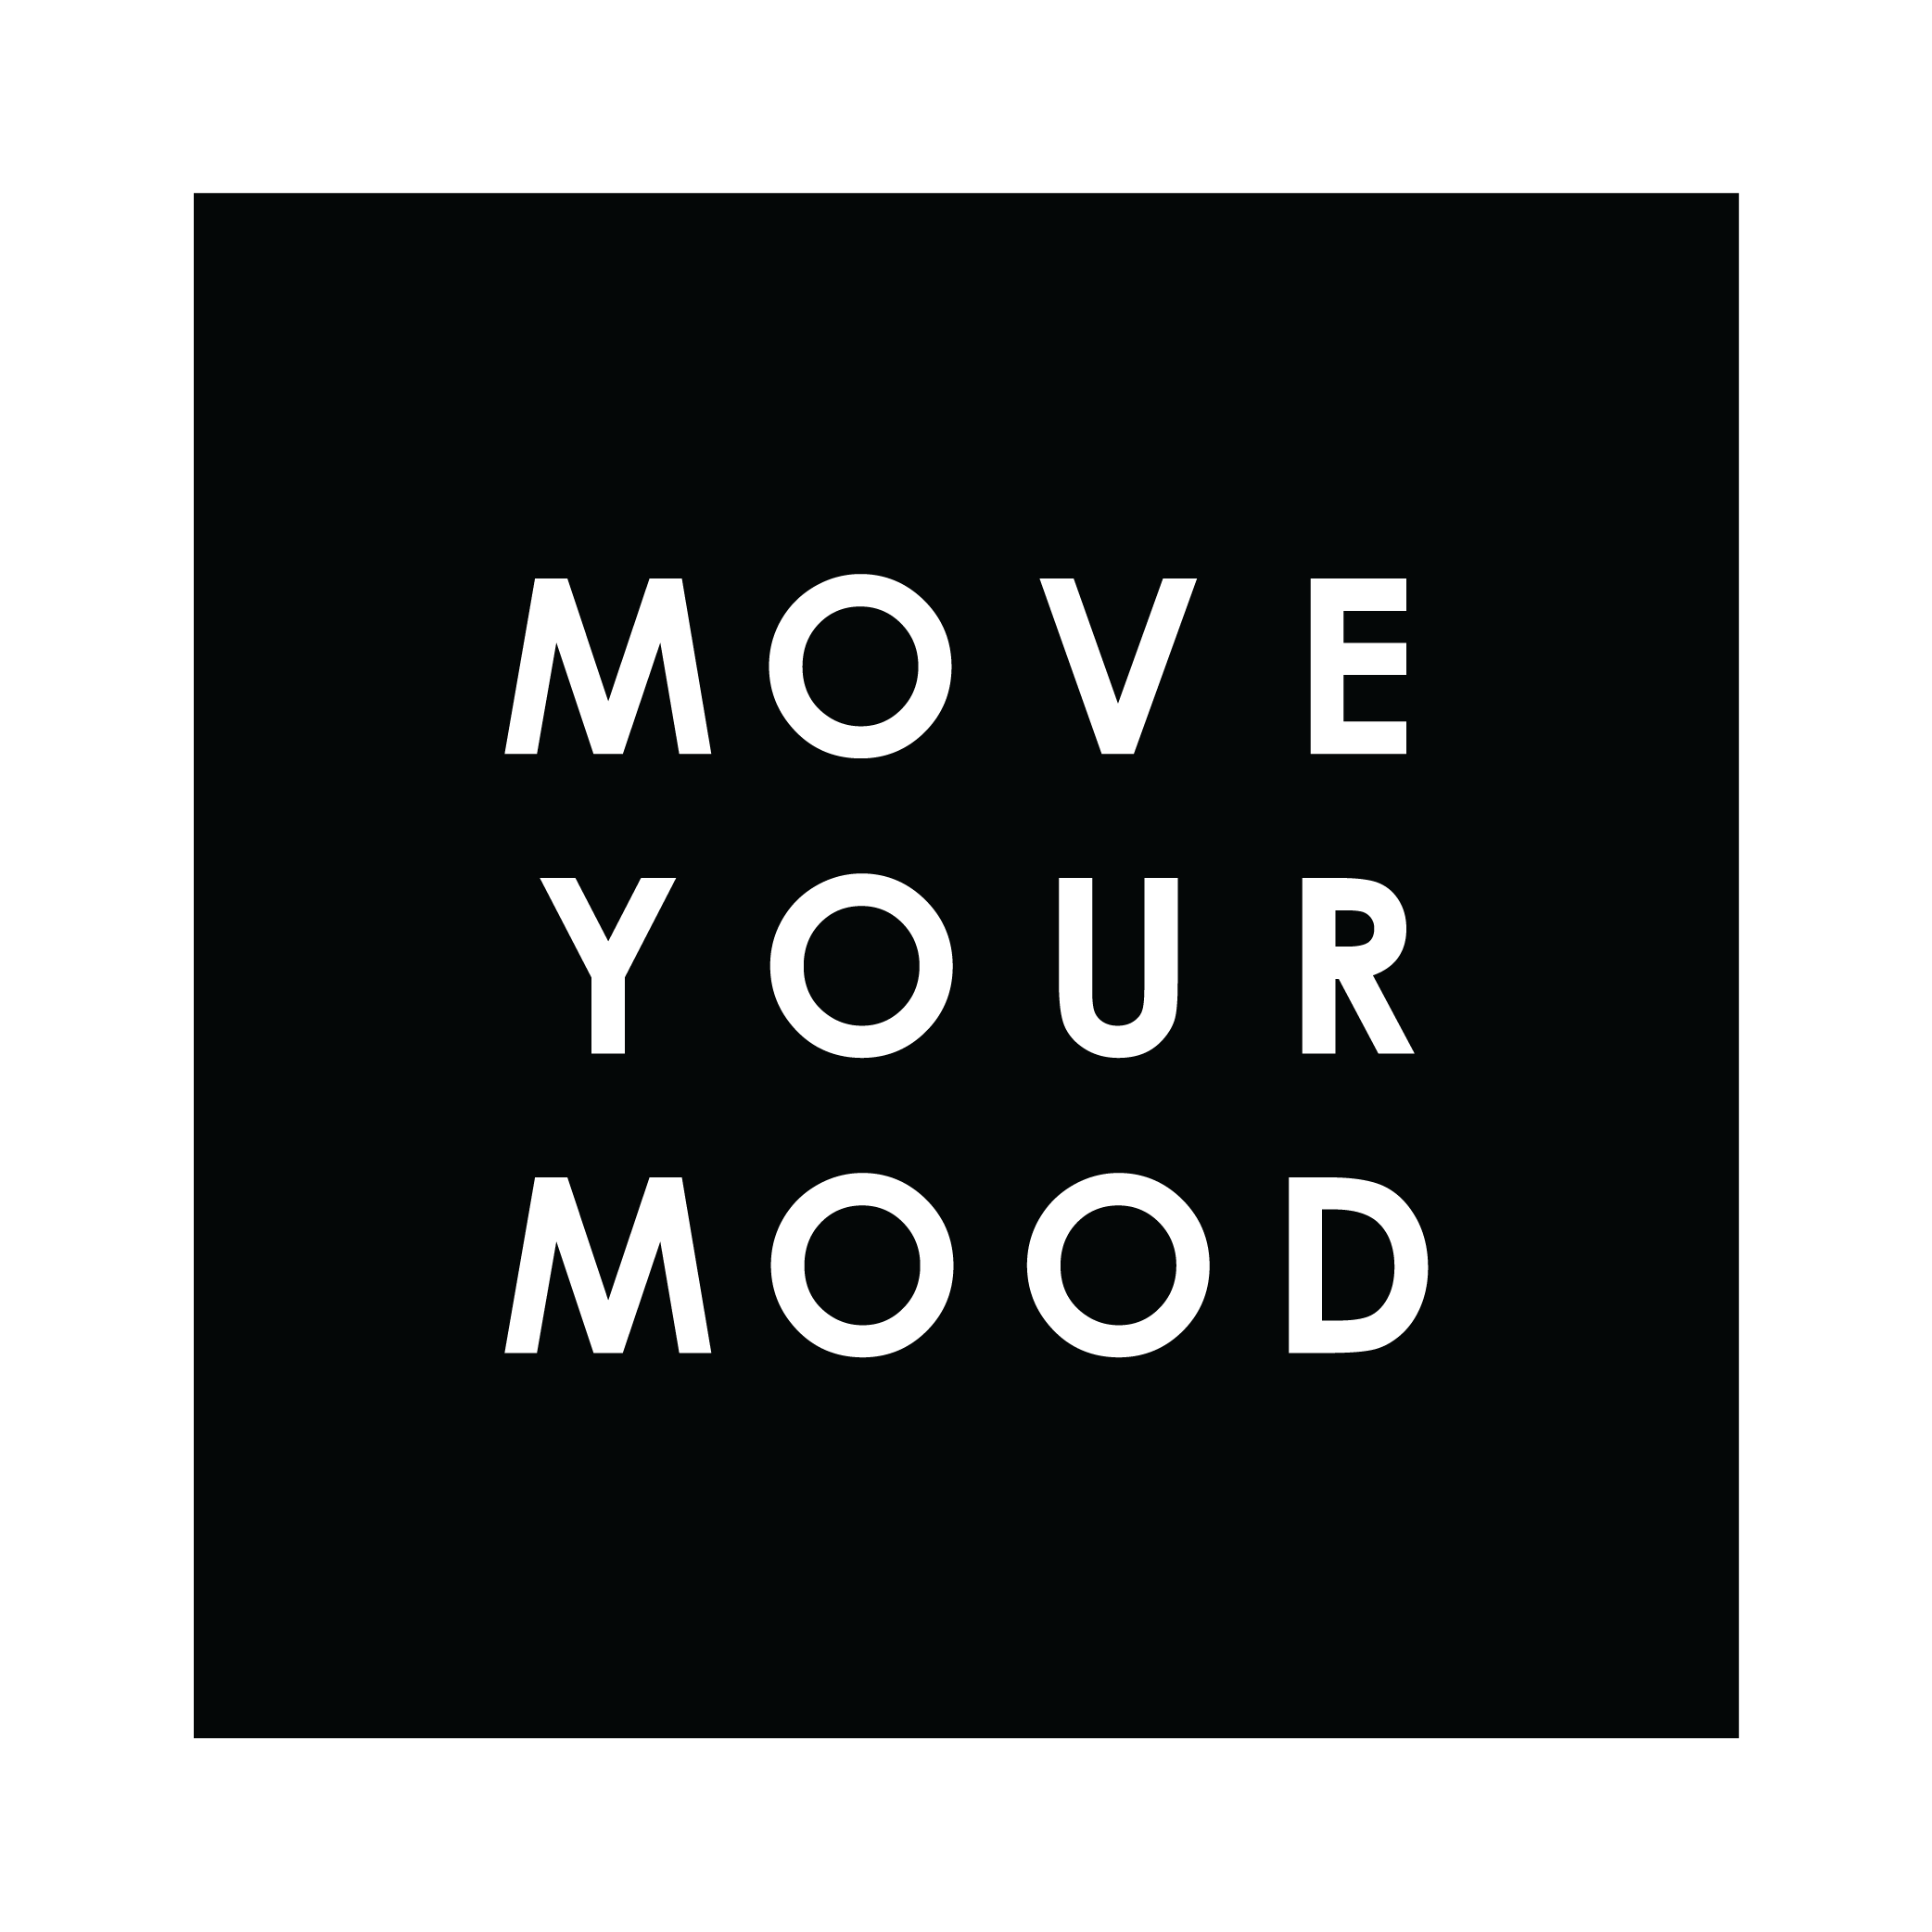 graphics_moveyourmood_patch_black_rgb.PNG